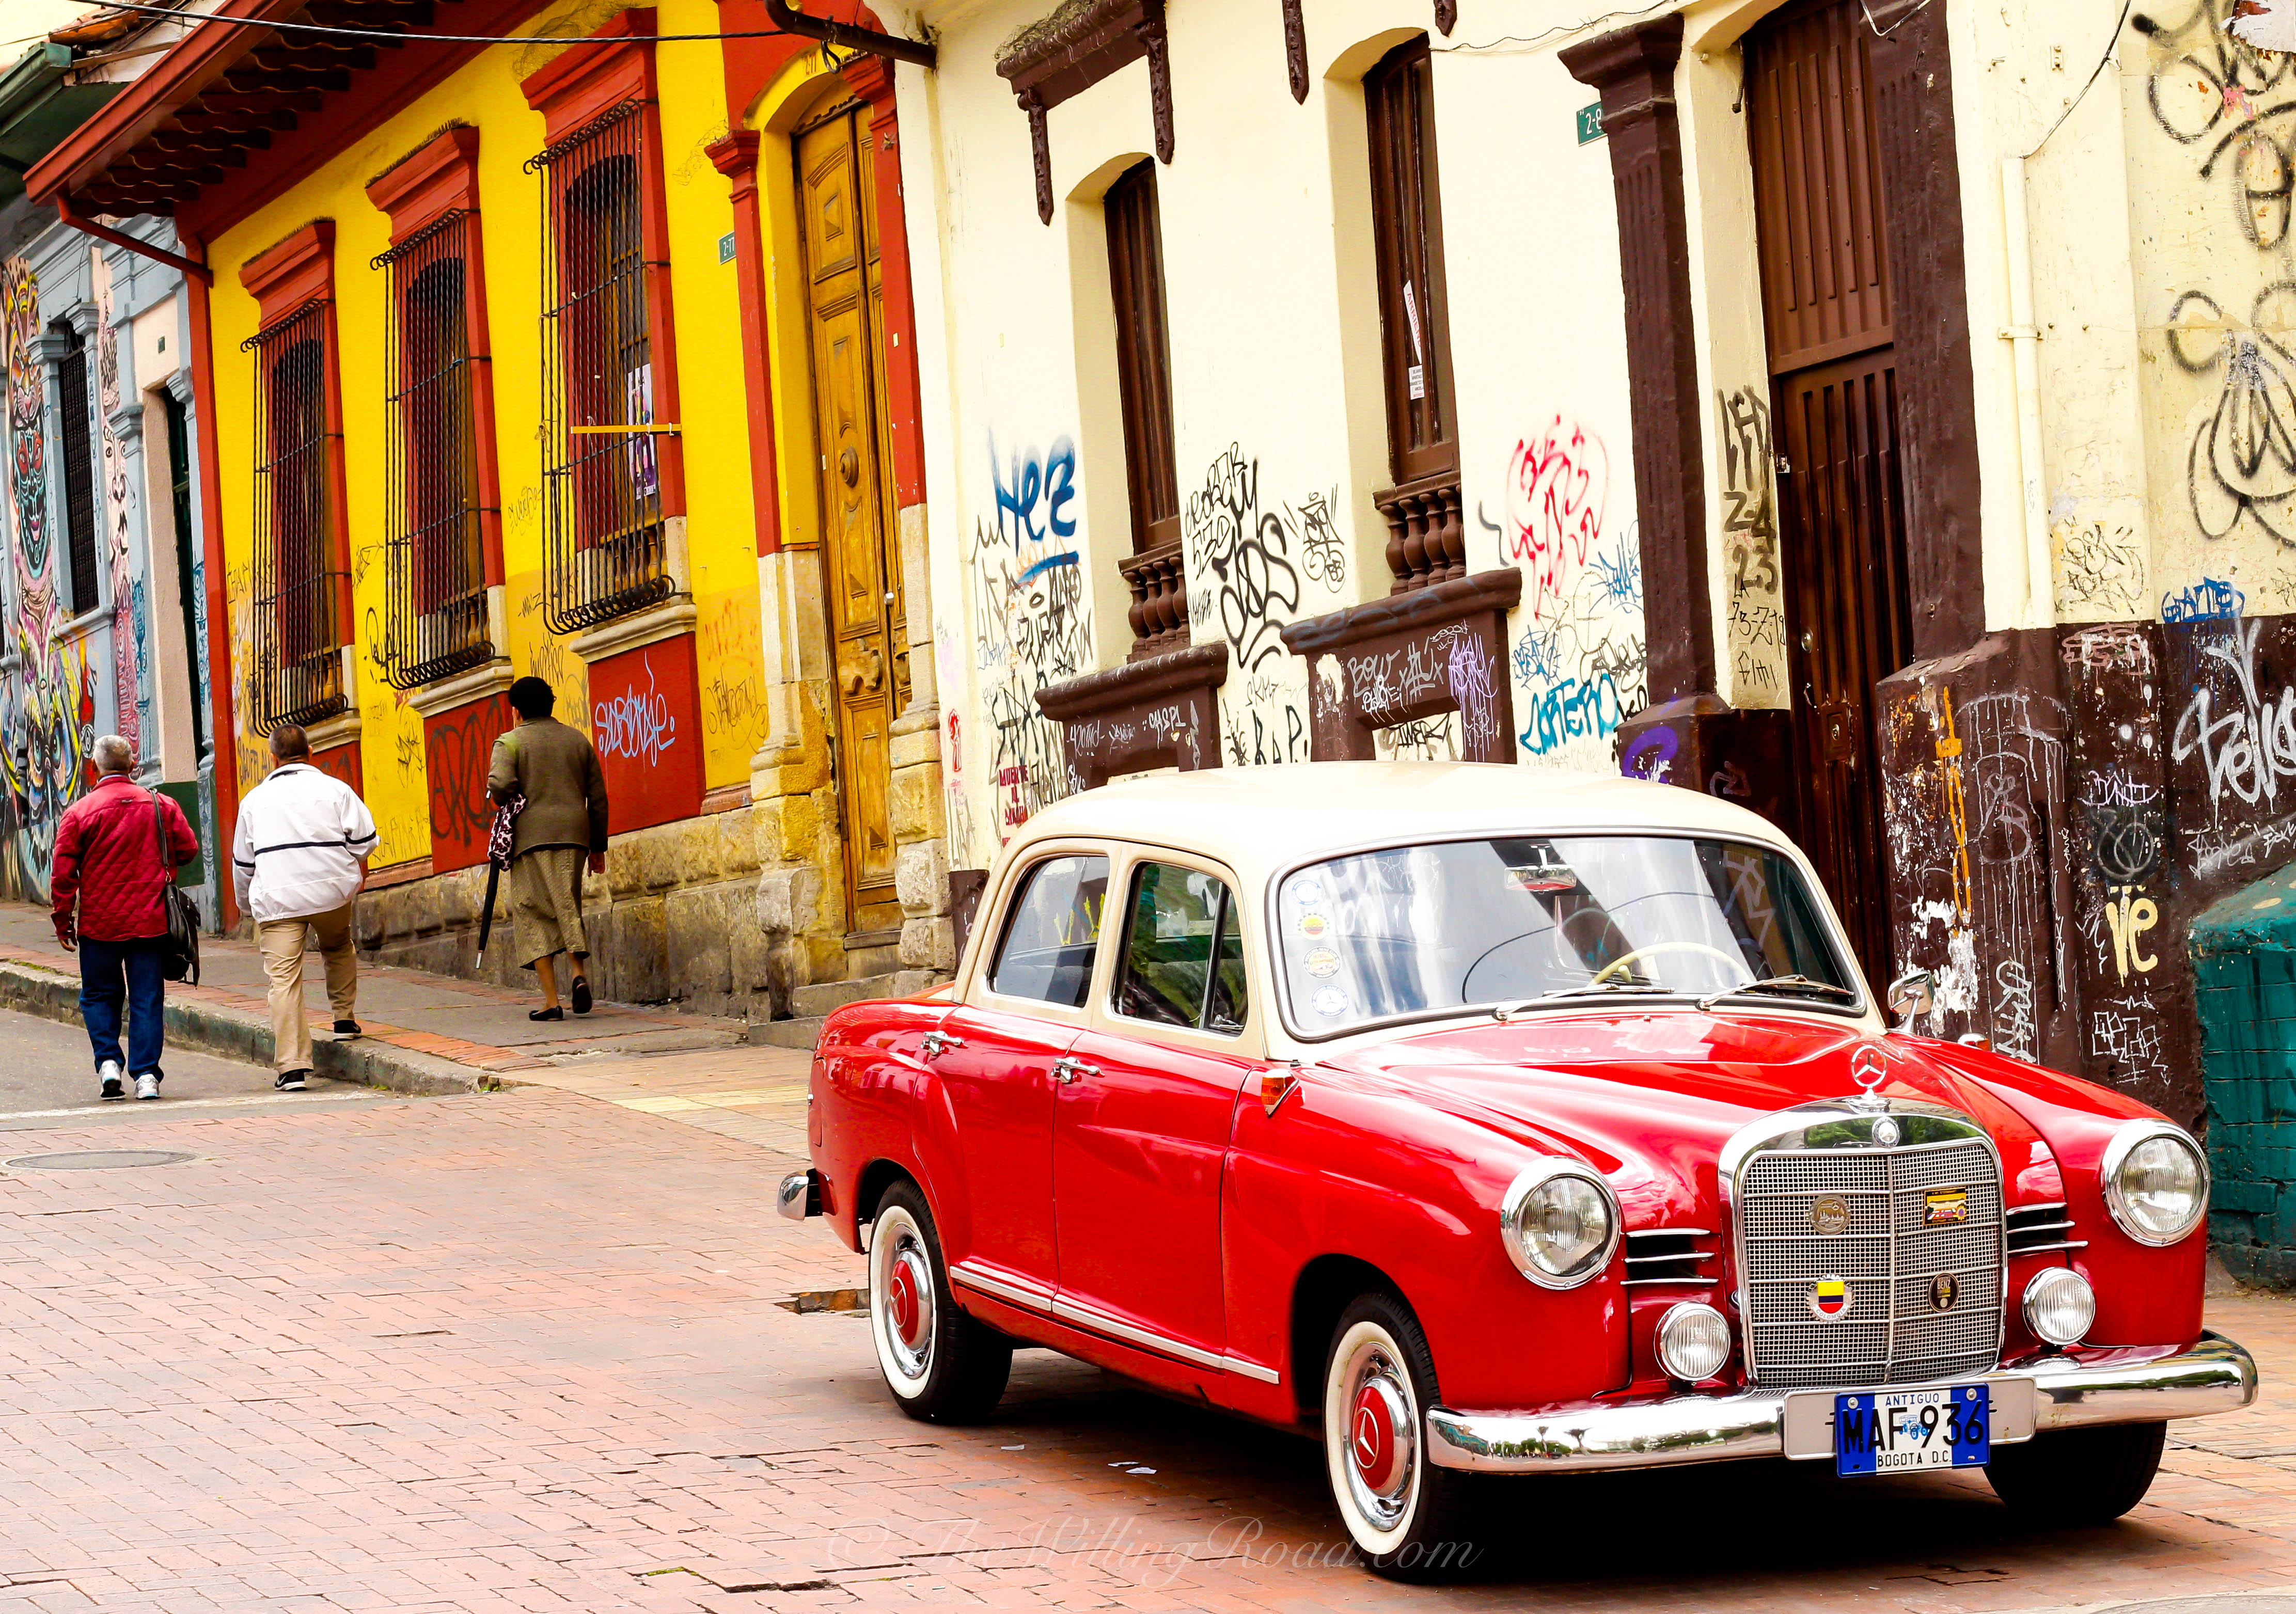 Bogota: How to Enjoy Your Time in A City You Don't Like